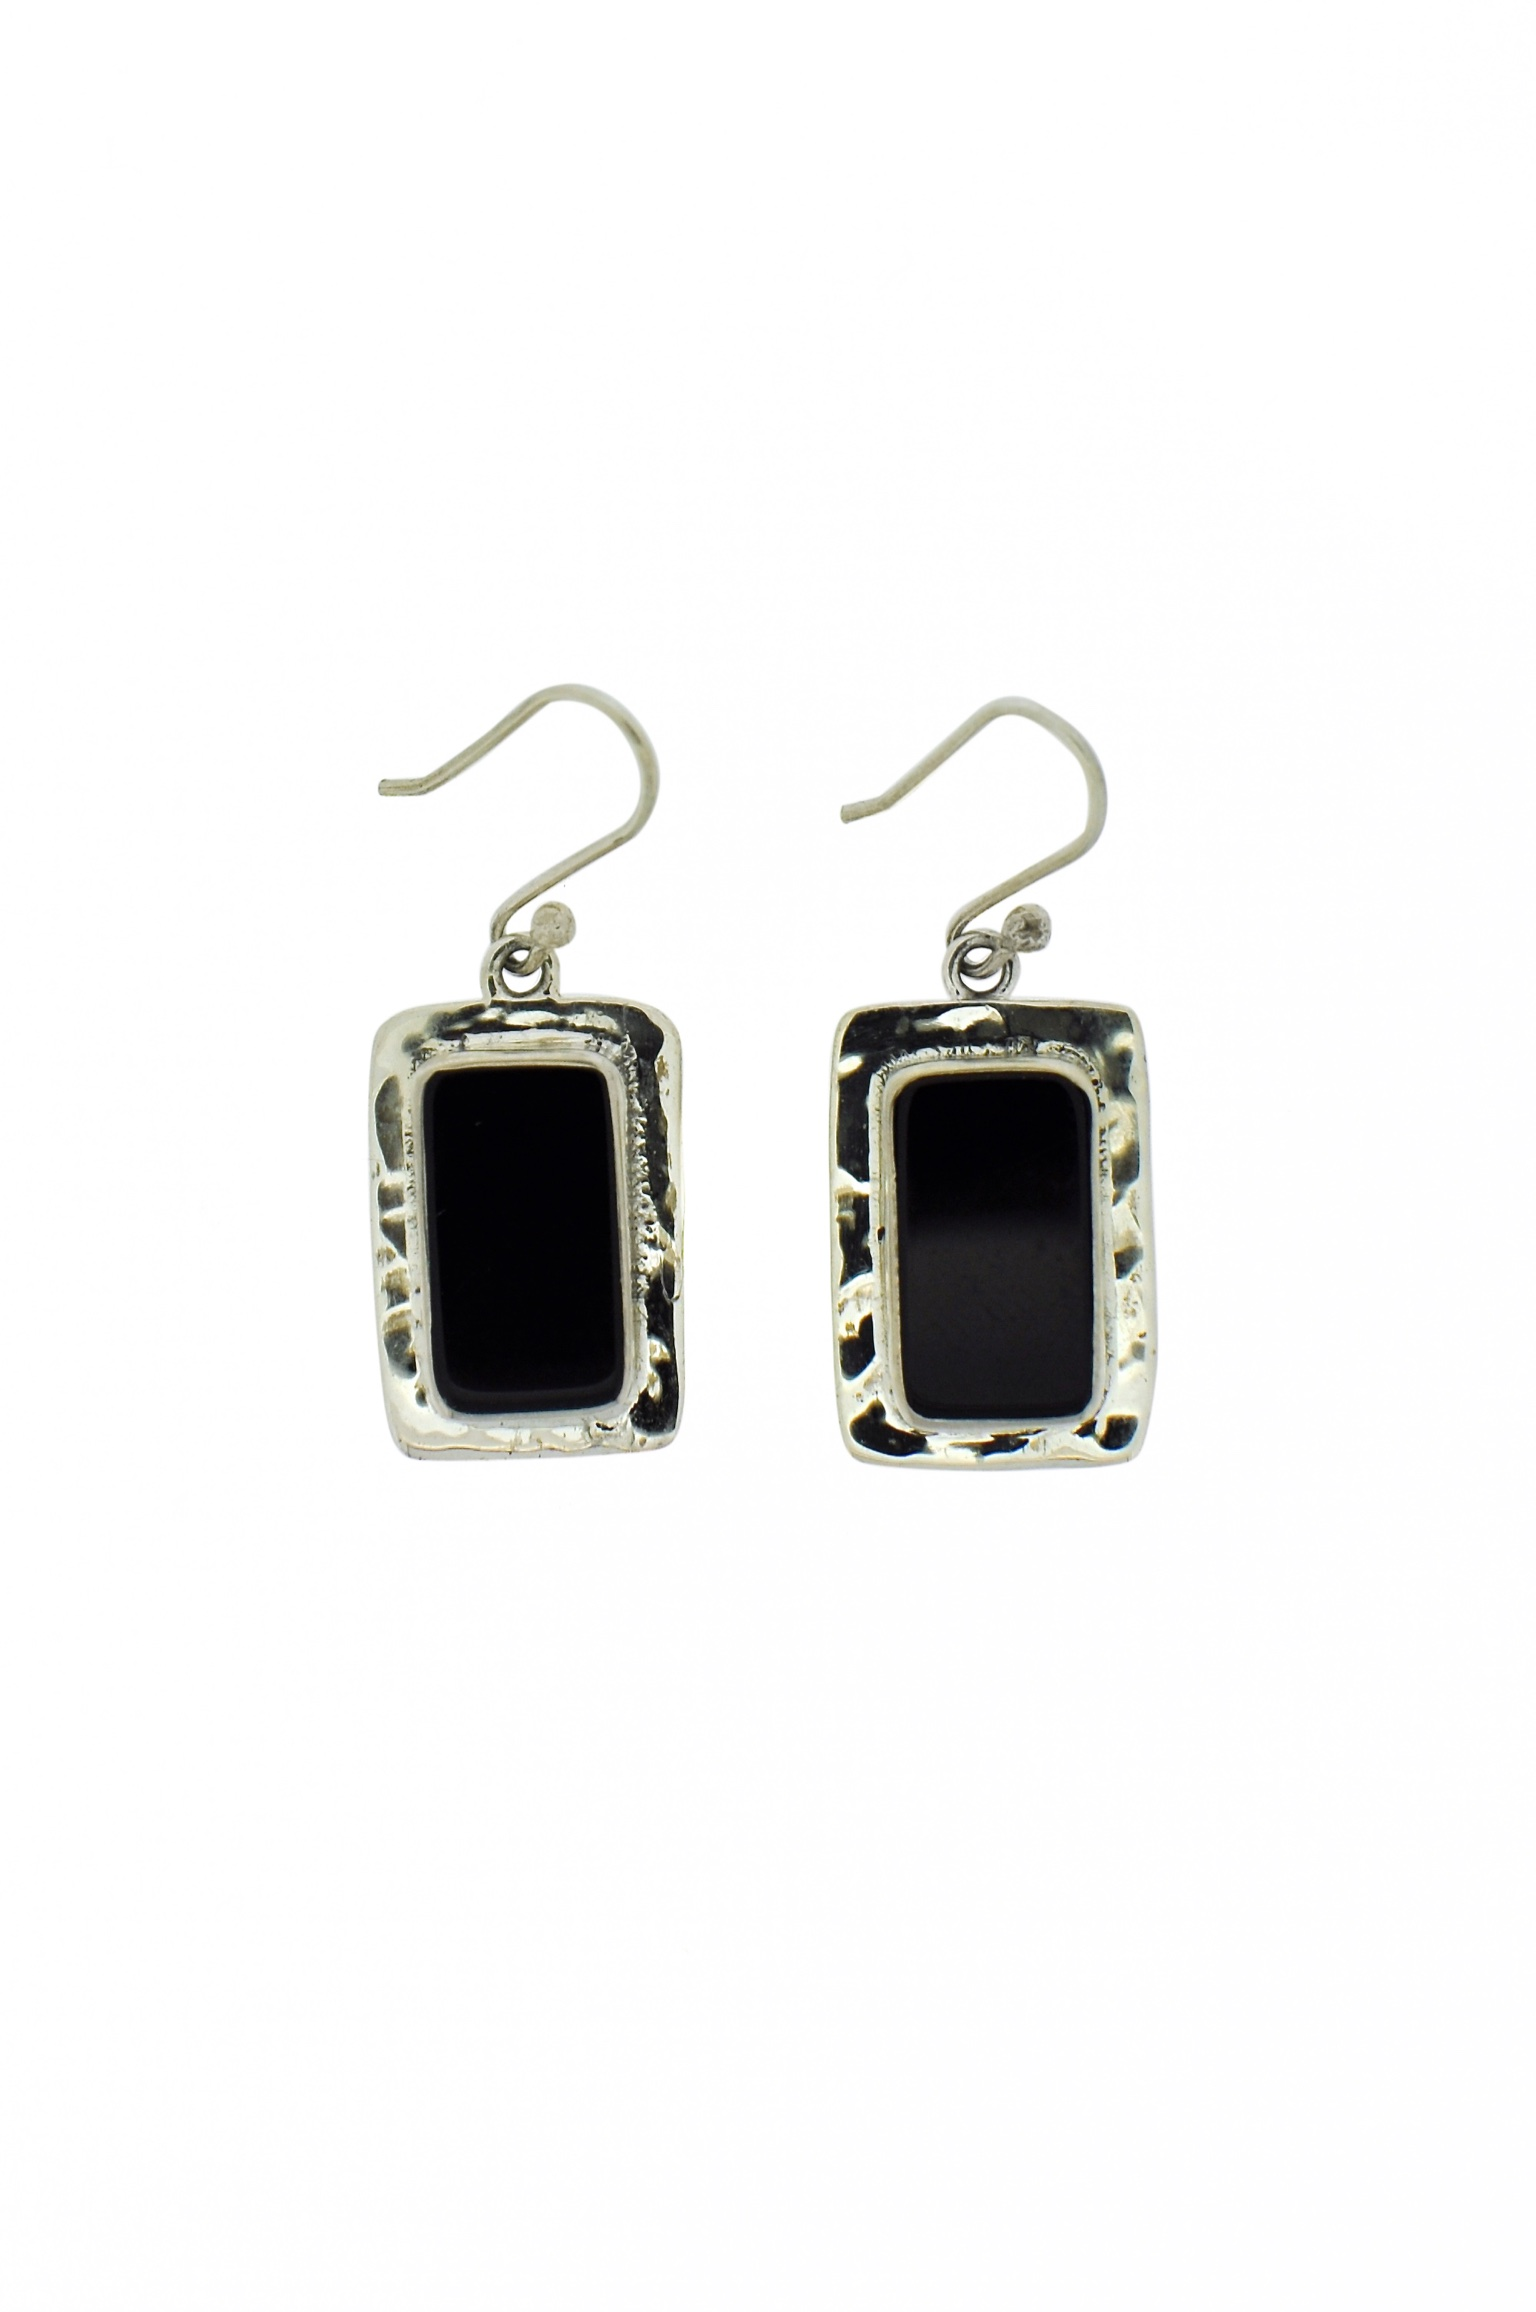 wire design product sterling earrings black bloomingoak onyx and kidney